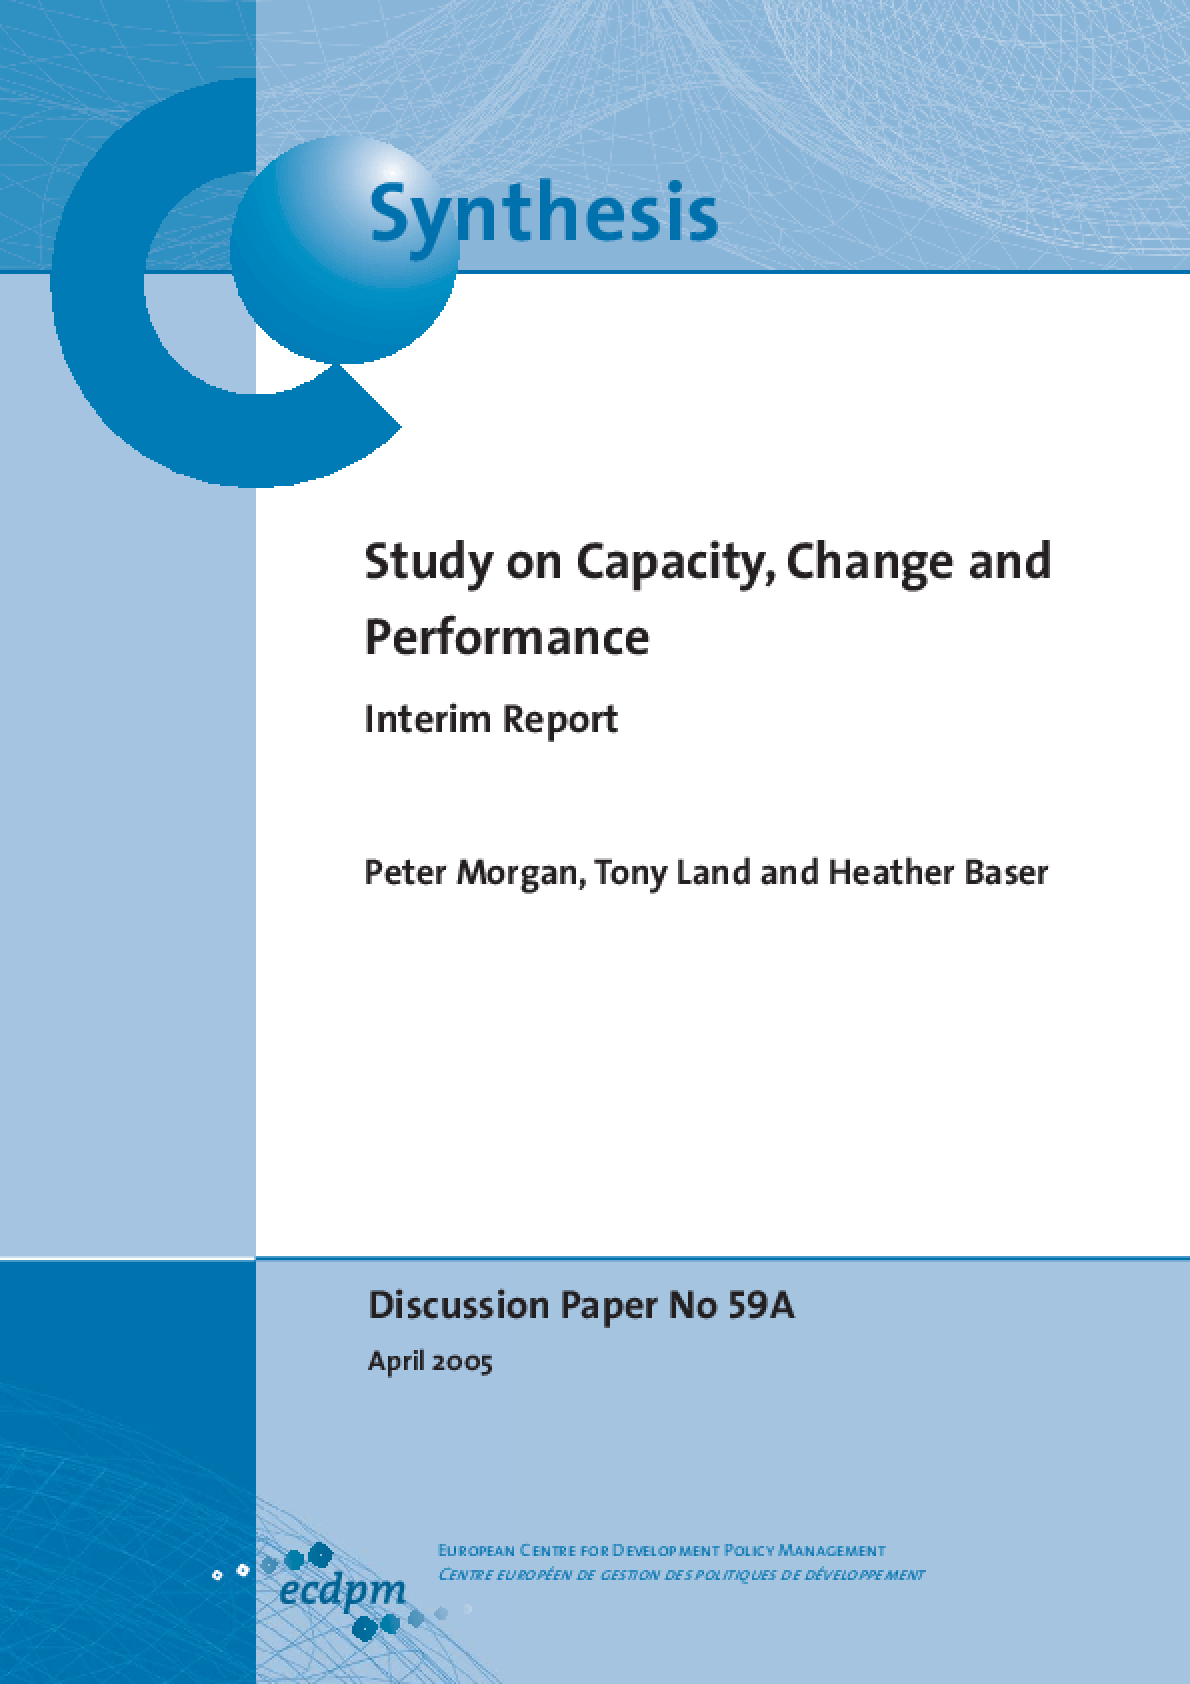 Study on Capacity, Change and Performance: Interim Report